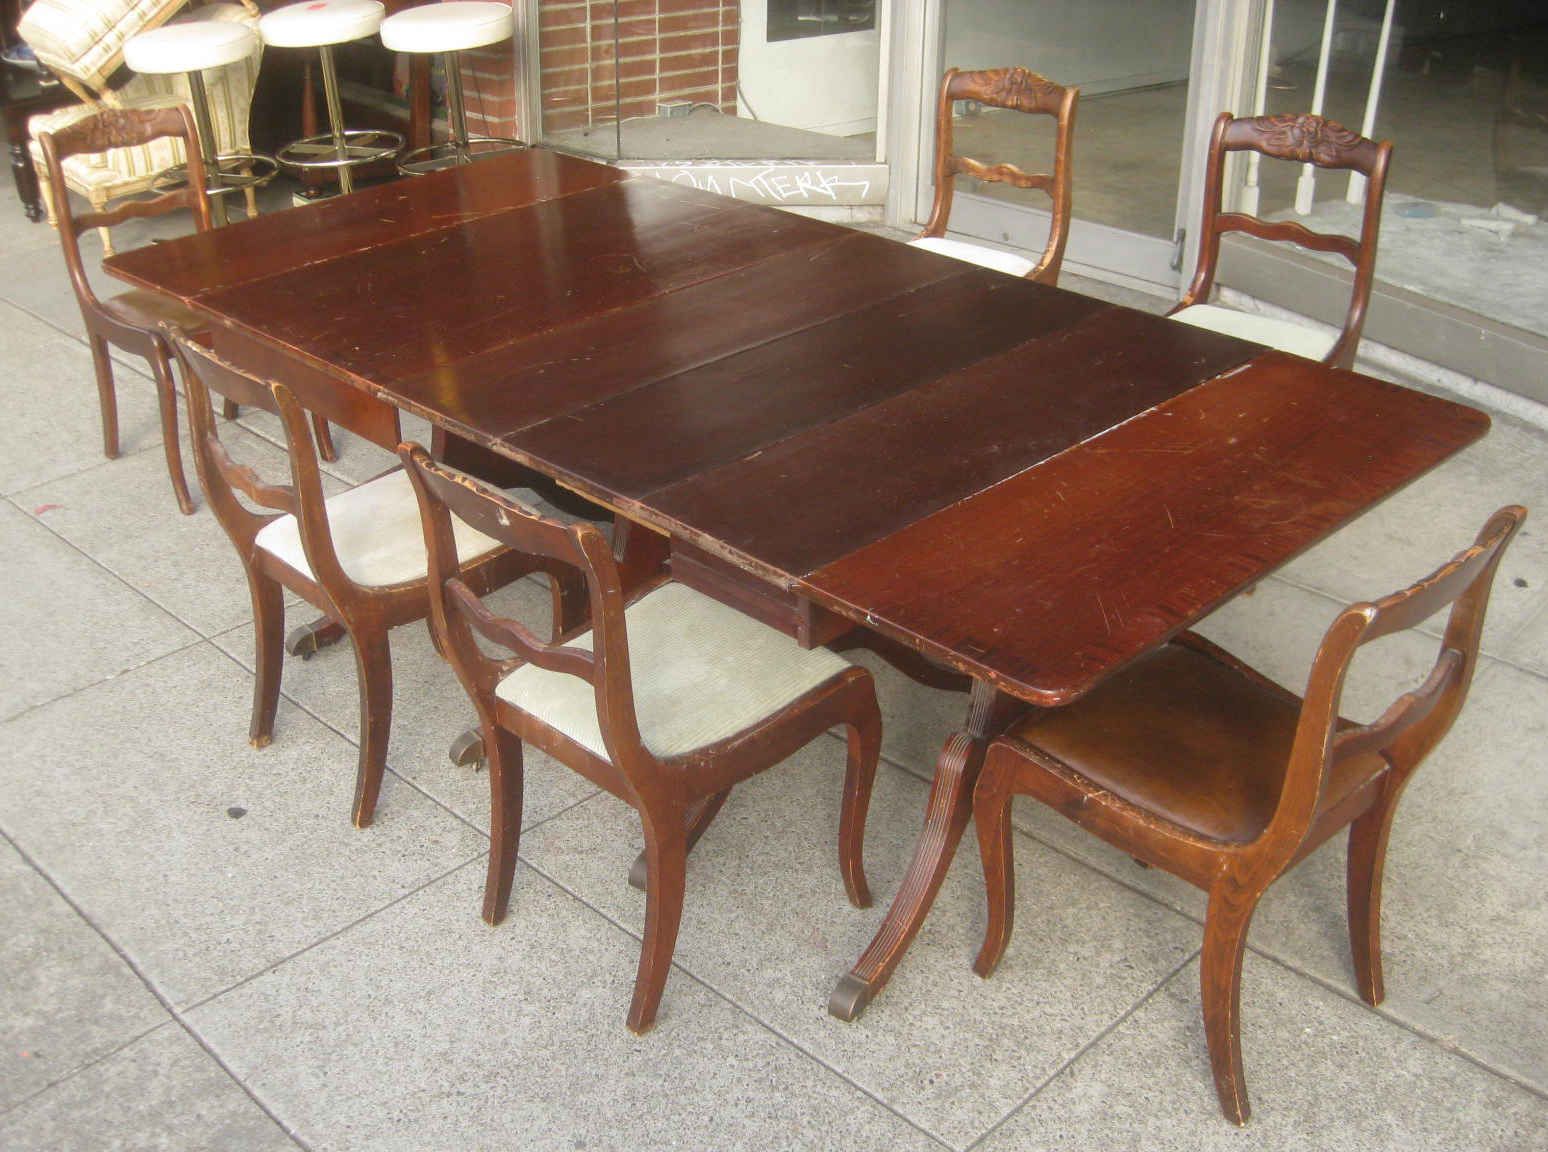 Pleasant Duncan Phyfe Dining Table Chairs Tyres2C Home Interior And Landscaping Ologienasavecom